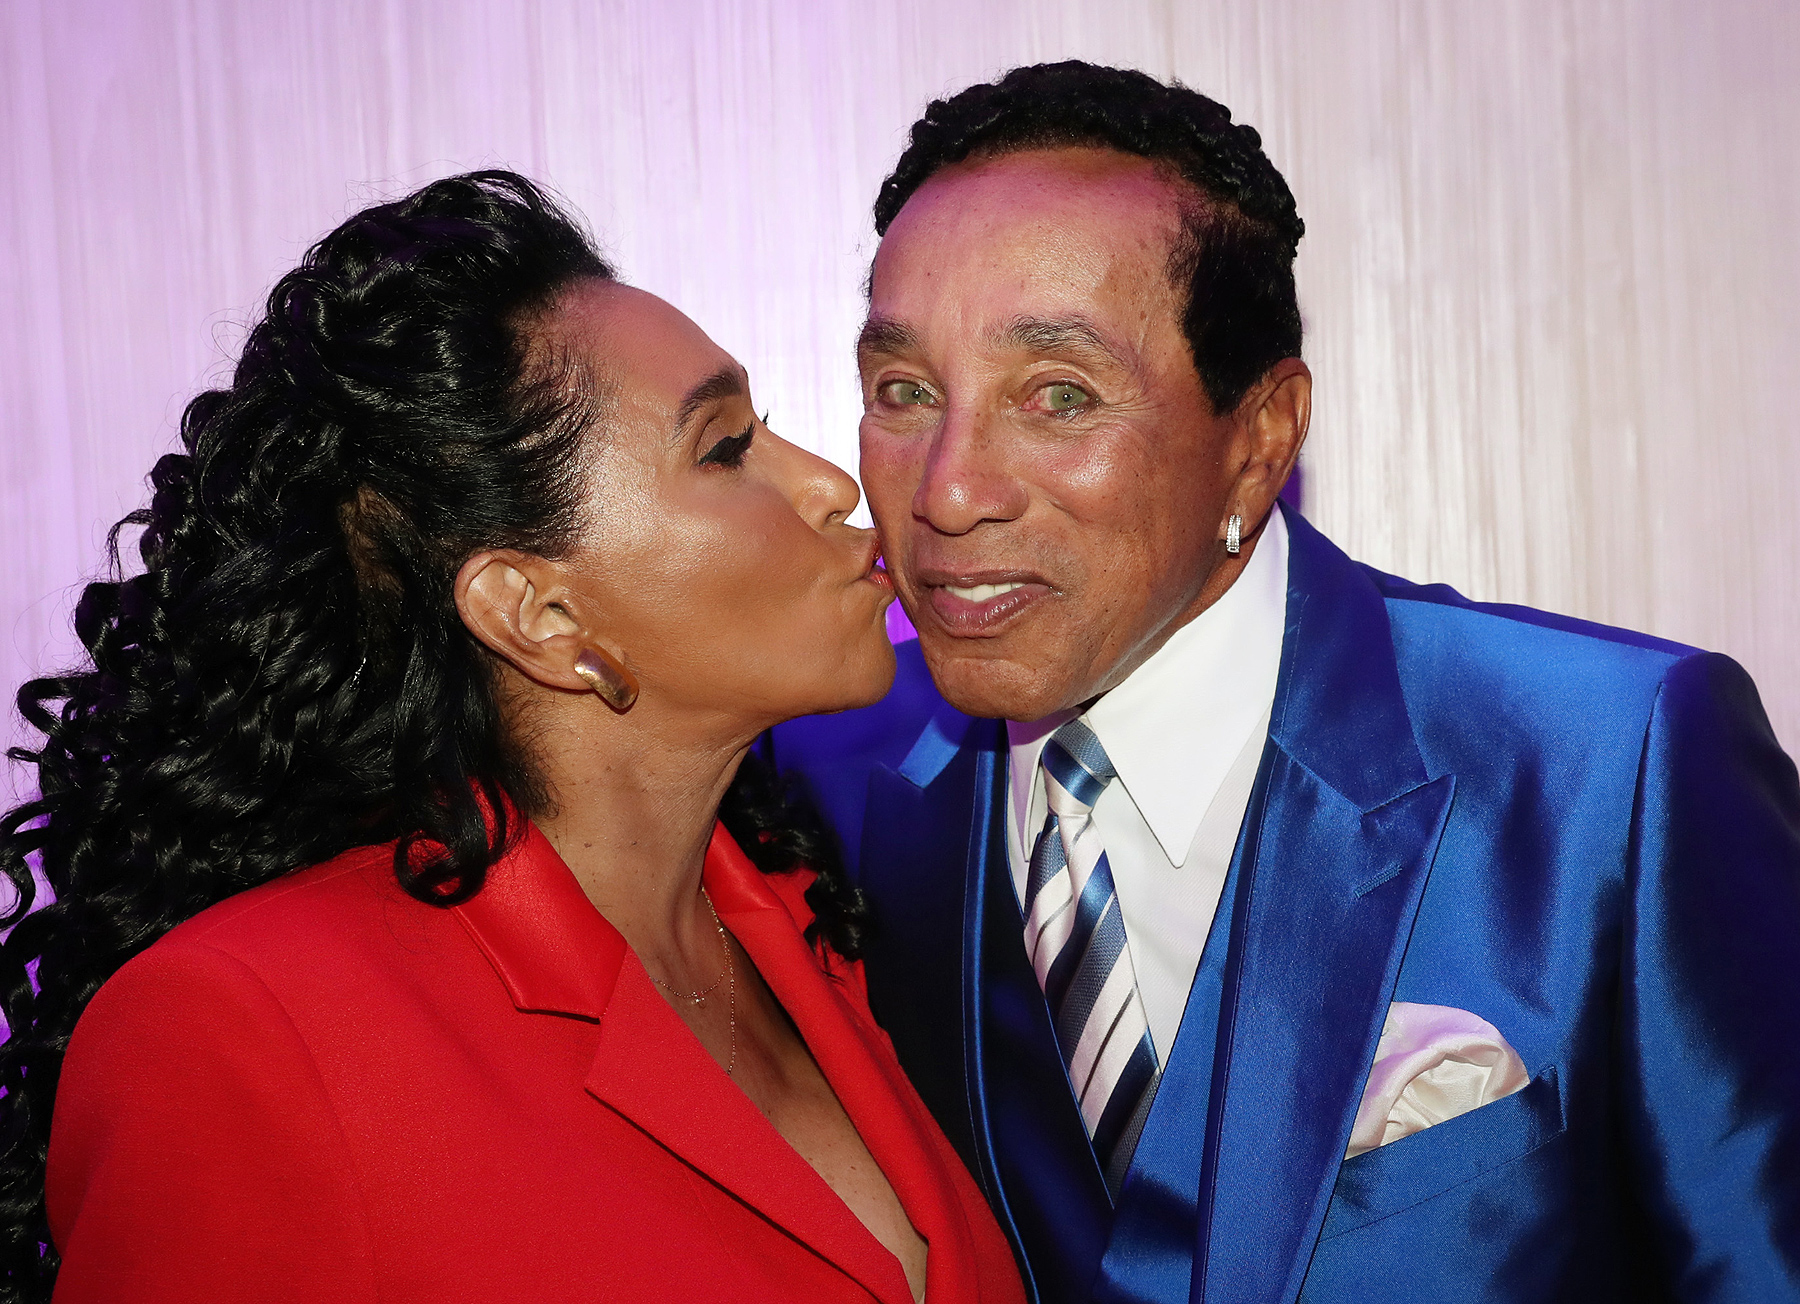 NEW YORK, NY - OCTOBER 19: (L-R) Frances Glandney Robinson and Smokey Robinson attend the Skinphonics Launch on October 19, 2016 in New York City. (Photo by Johnny Nunez/WireImage)